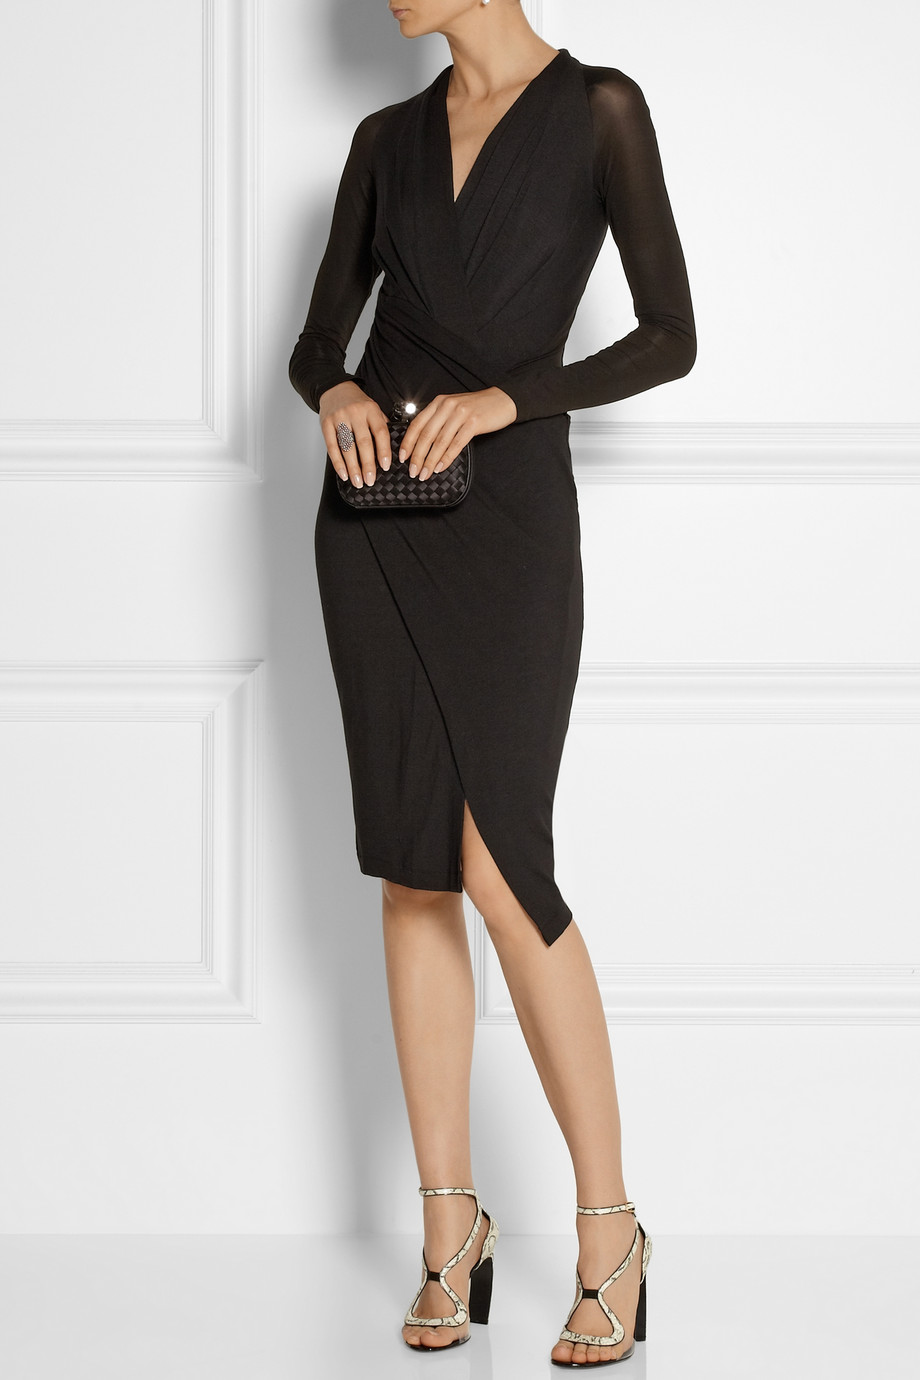 Donna Karan Black cocktail dress